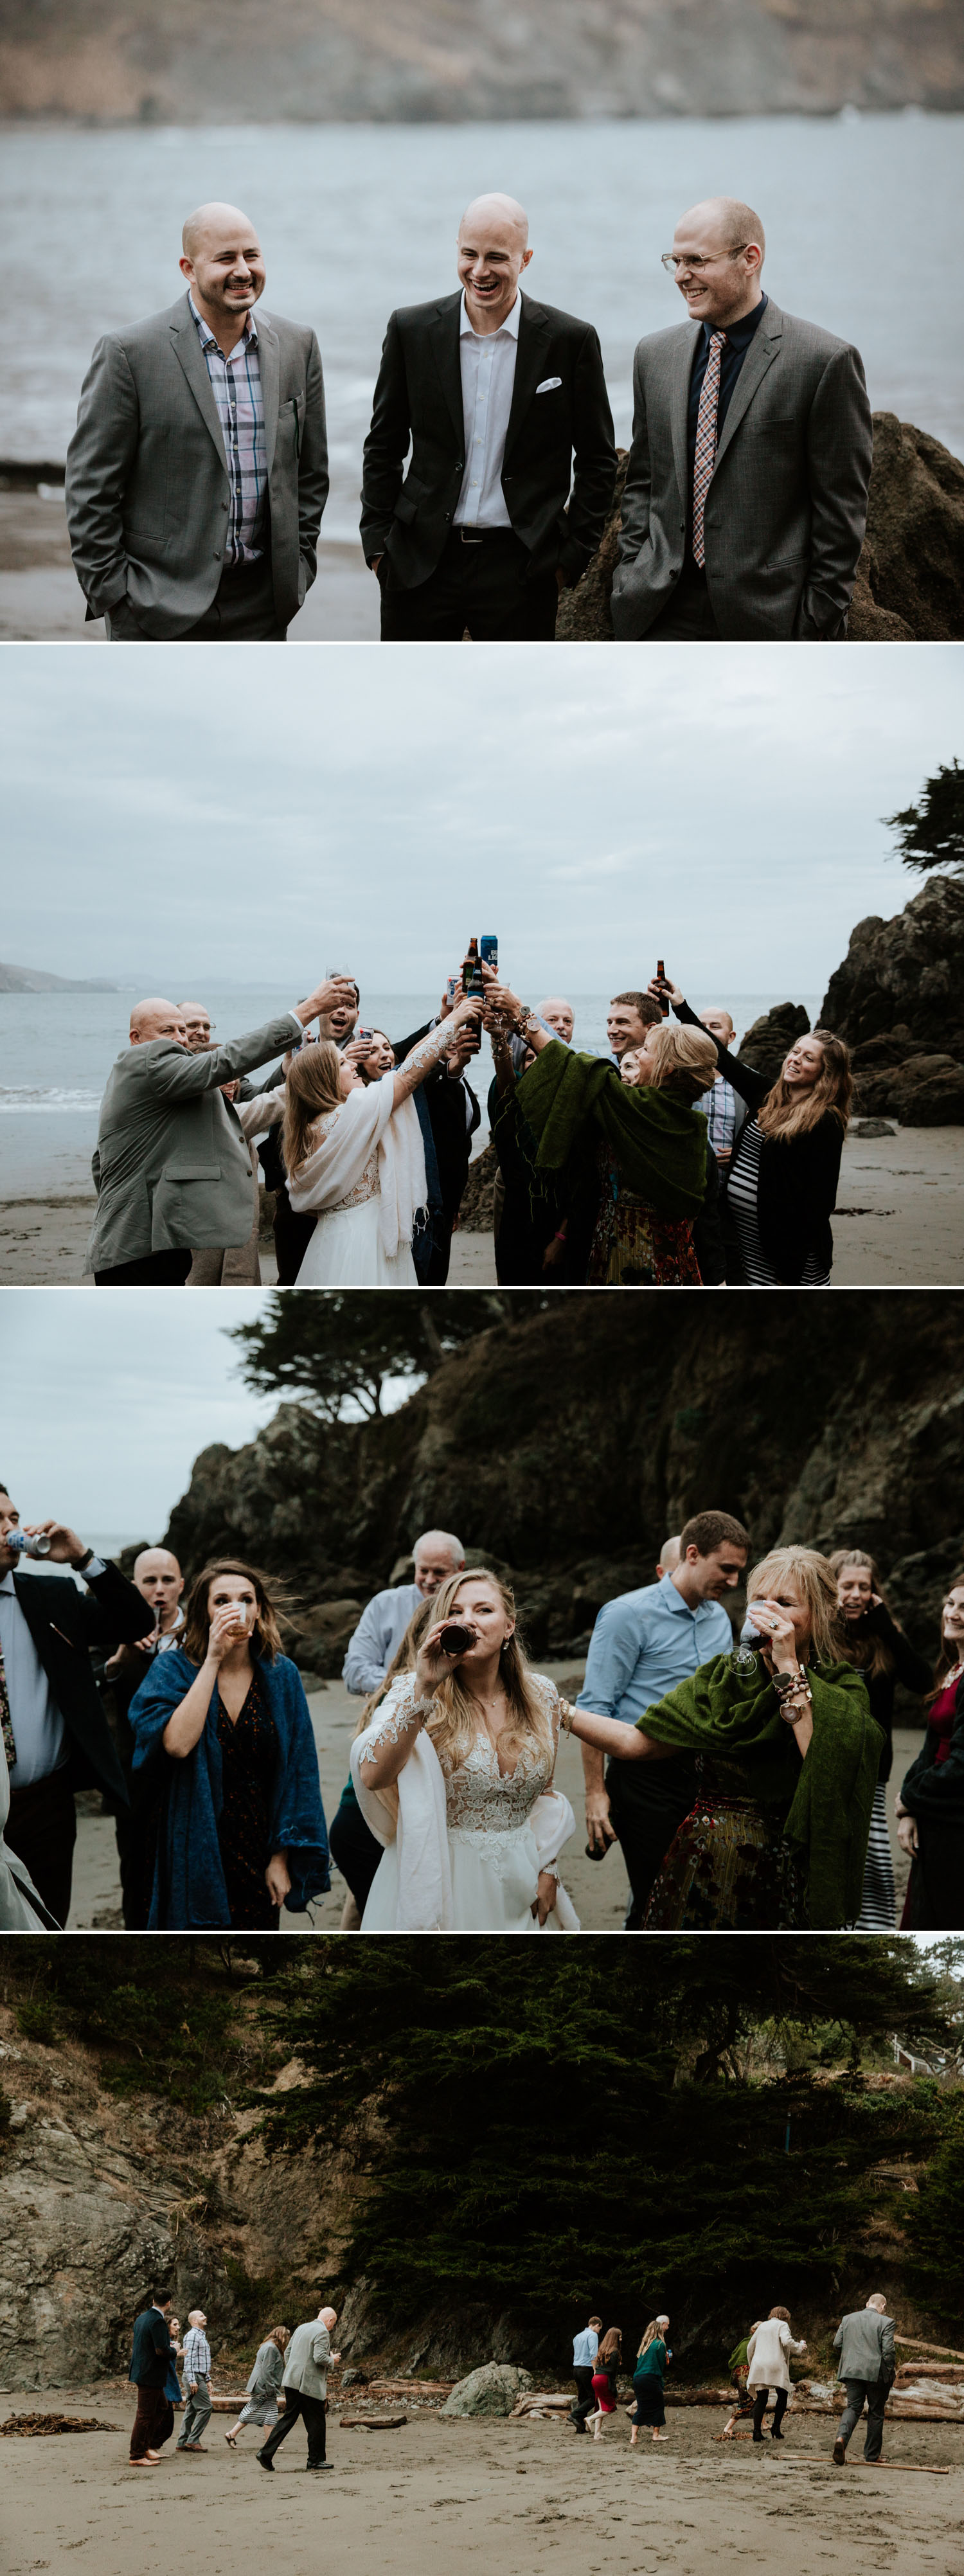 Intimate wedding at Muir Beach in San Francisco by Paige Nelson